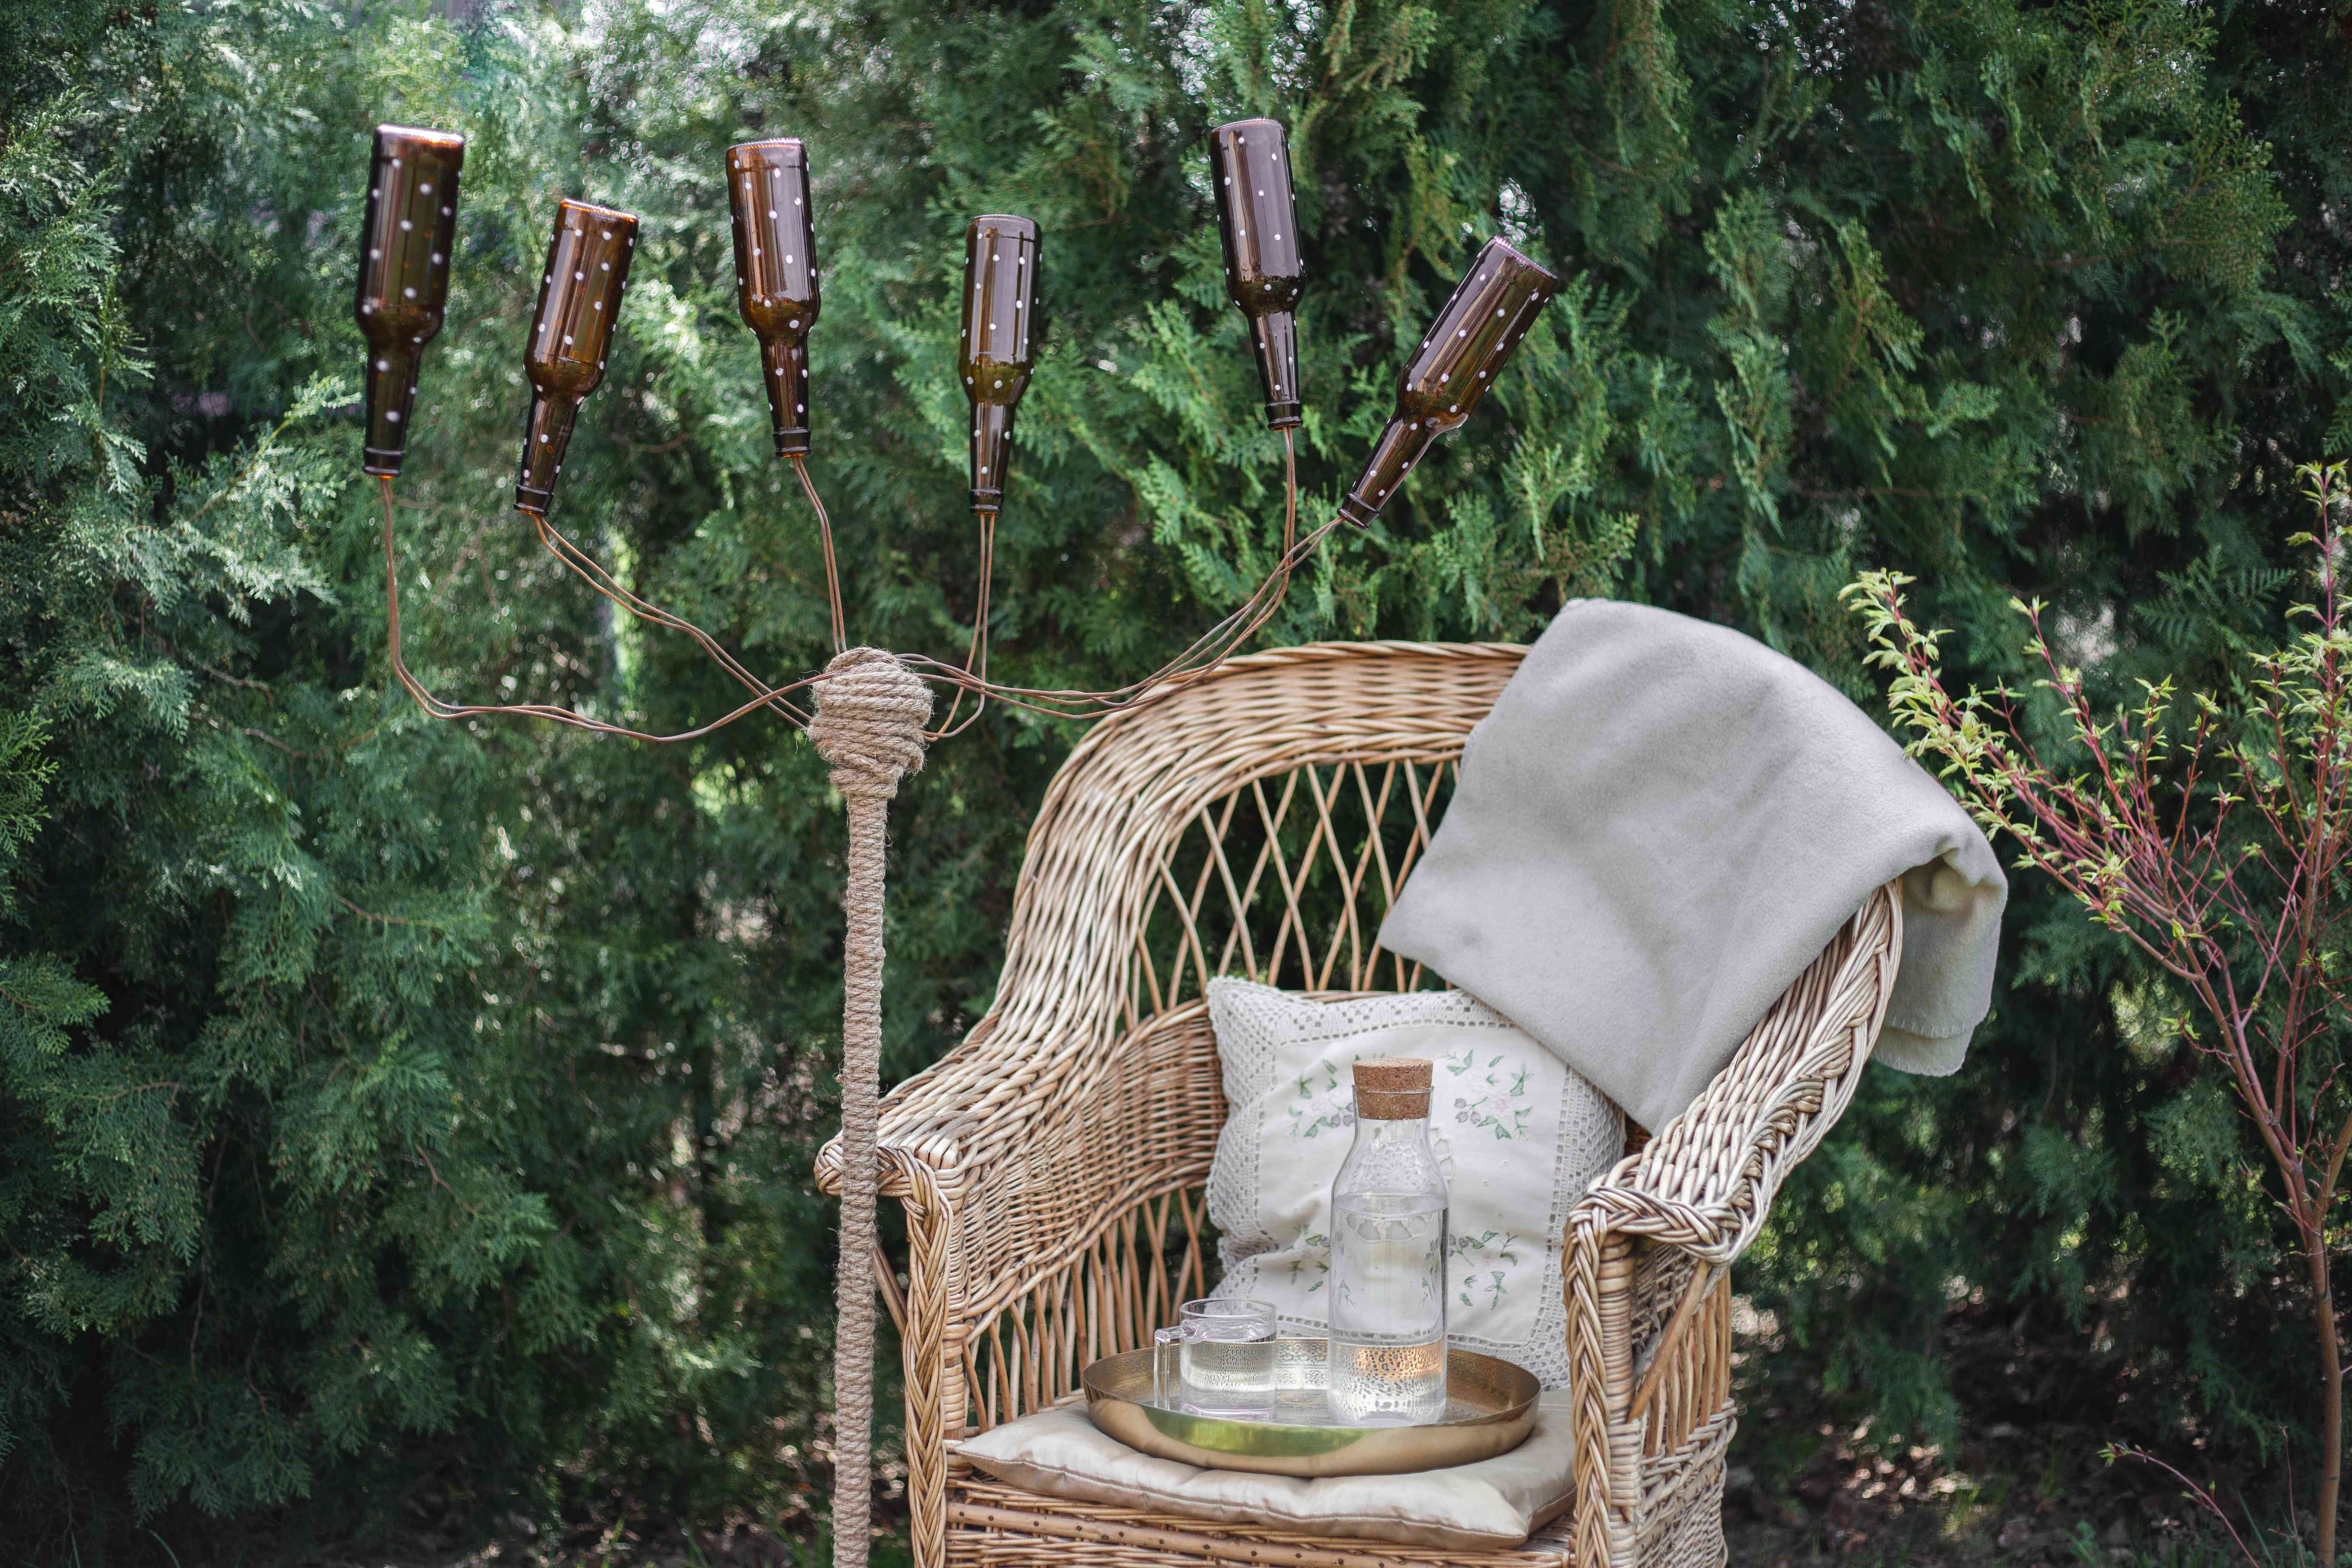 upcycled brown glass bottle tree as outside decor next to wicker chair